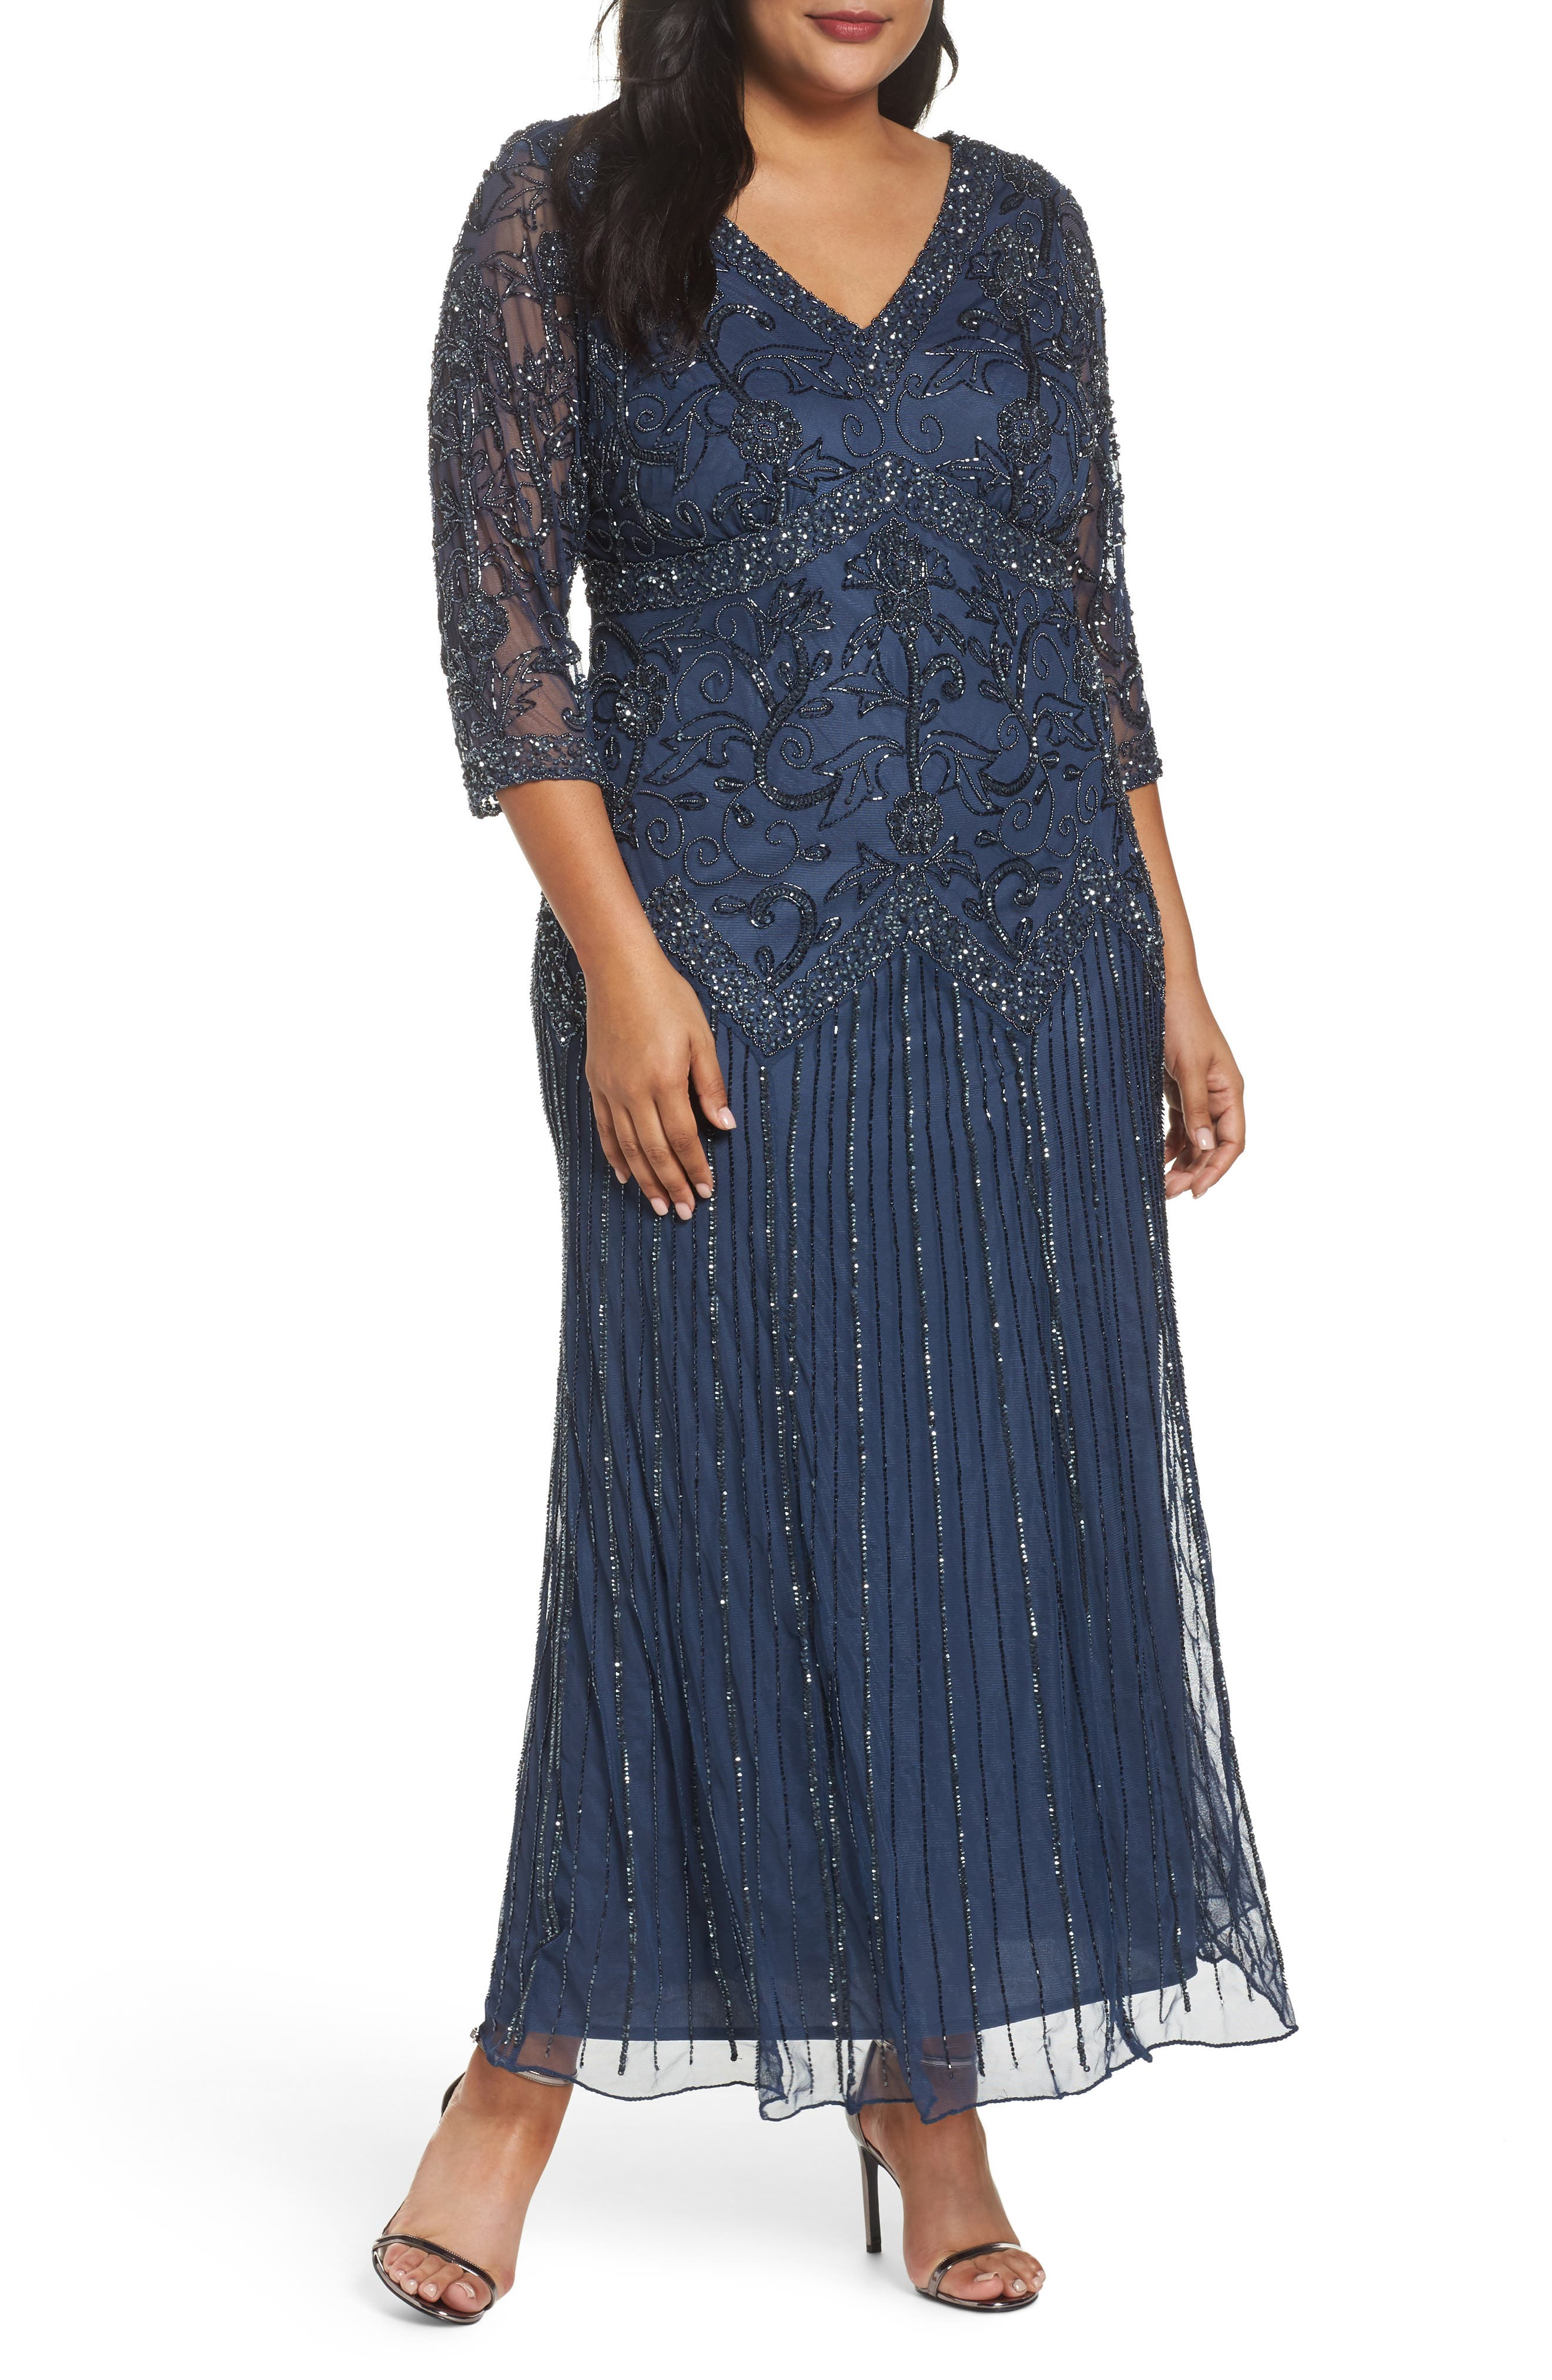 Alternate Image 1 Selected - Pisarro Nights Embellished Double V-Neck Midi Dress (Plus Size)